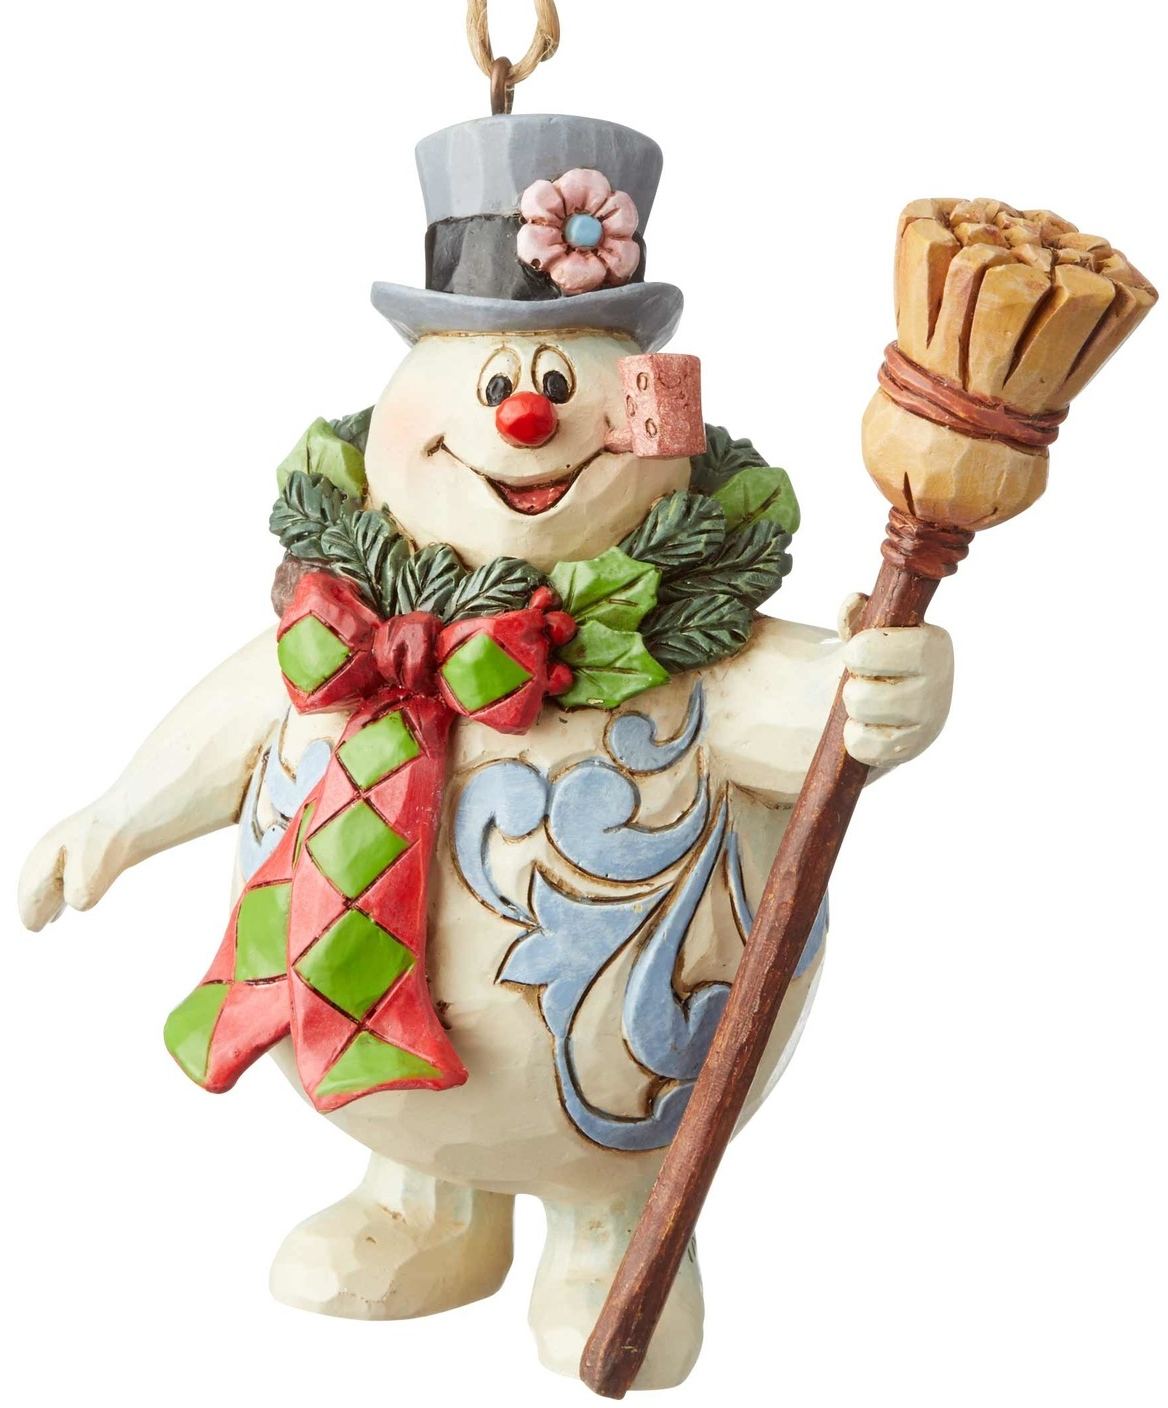 Jim Shore Frosty 6004160 Frosty With Wreath